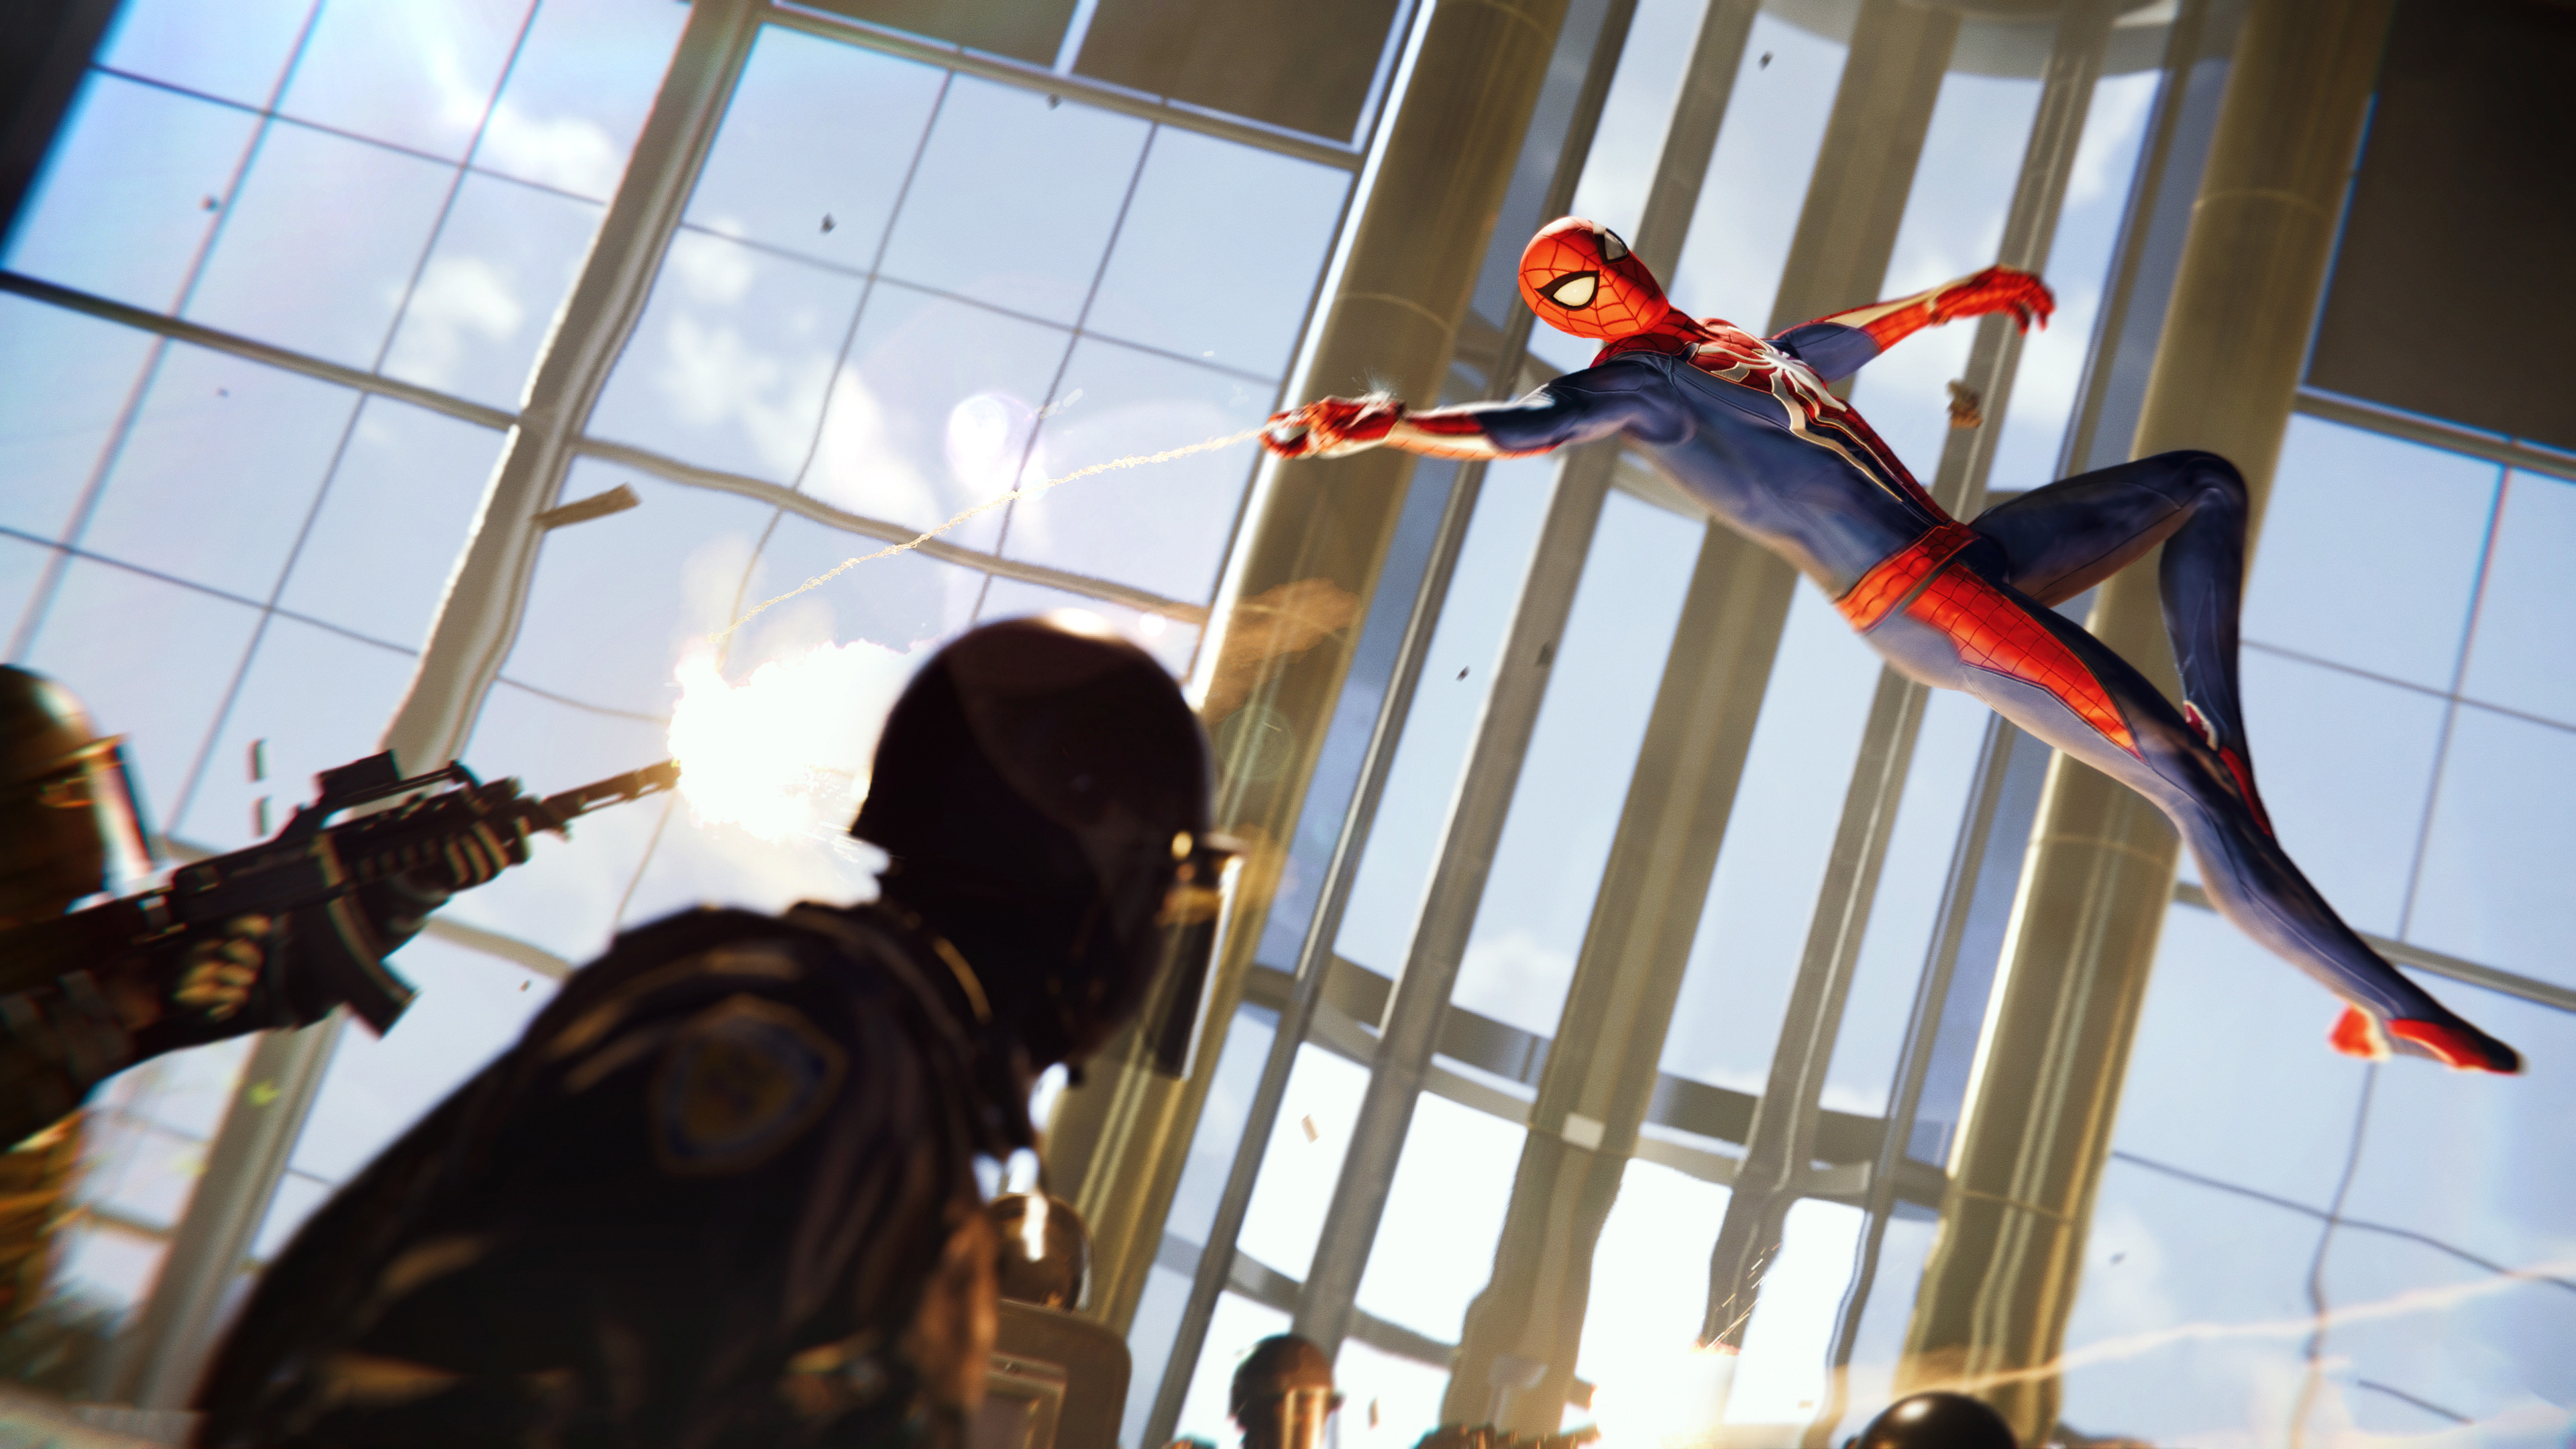 spiderman ps4 video game 2018 4k 1537691413 - Spiderman Ps4 Video Game 2018 4k - spiderman wallpapers, spiderman ps4 wallpapers, ps games wallpapers, hd-wallpapers, games wallpapers, 4k-wallpapers, 2018 games wallpapers